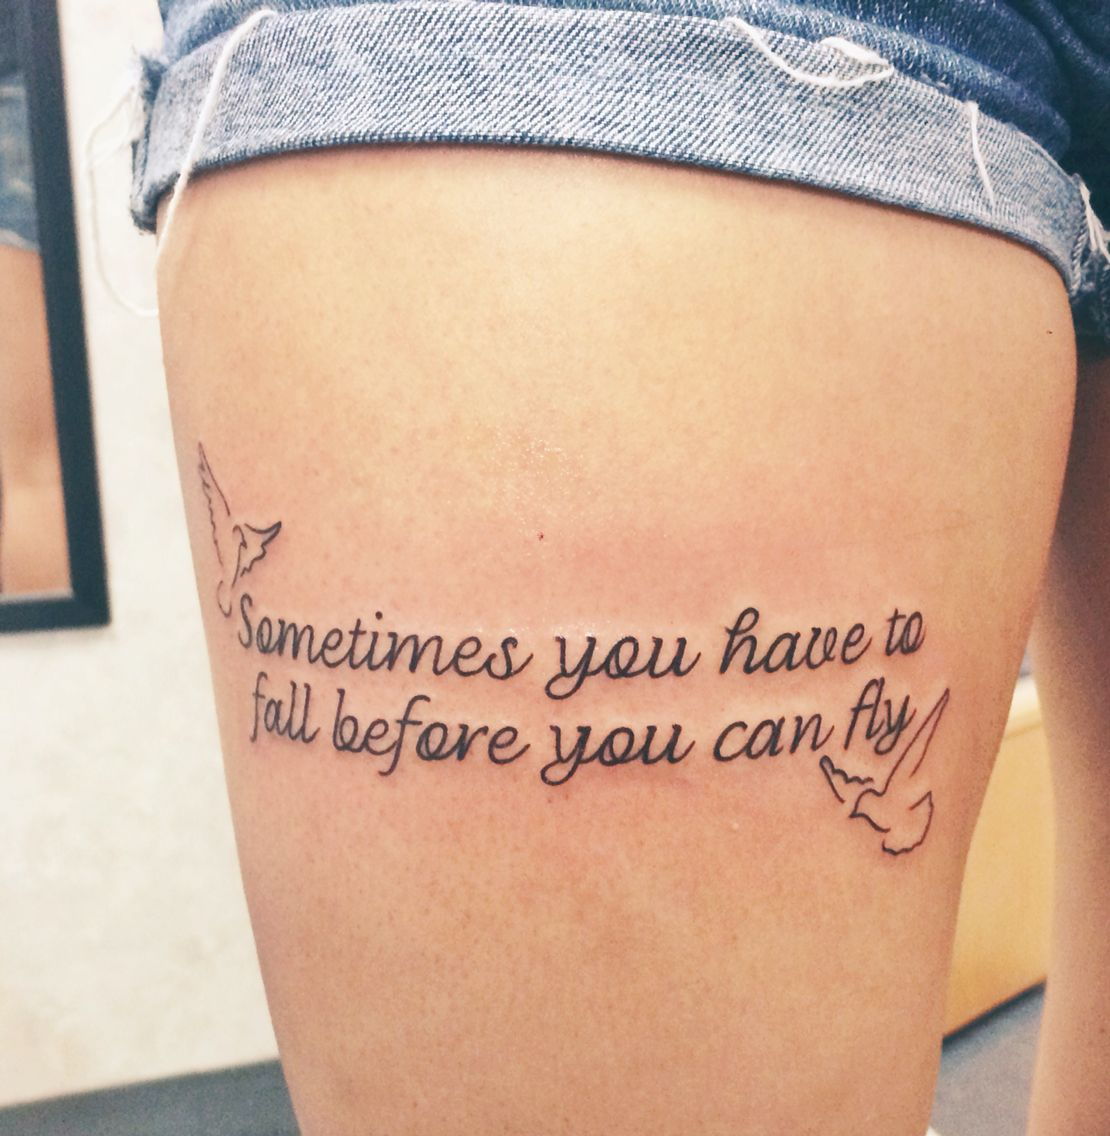 sometimes you have to fall before you can fly tattoo